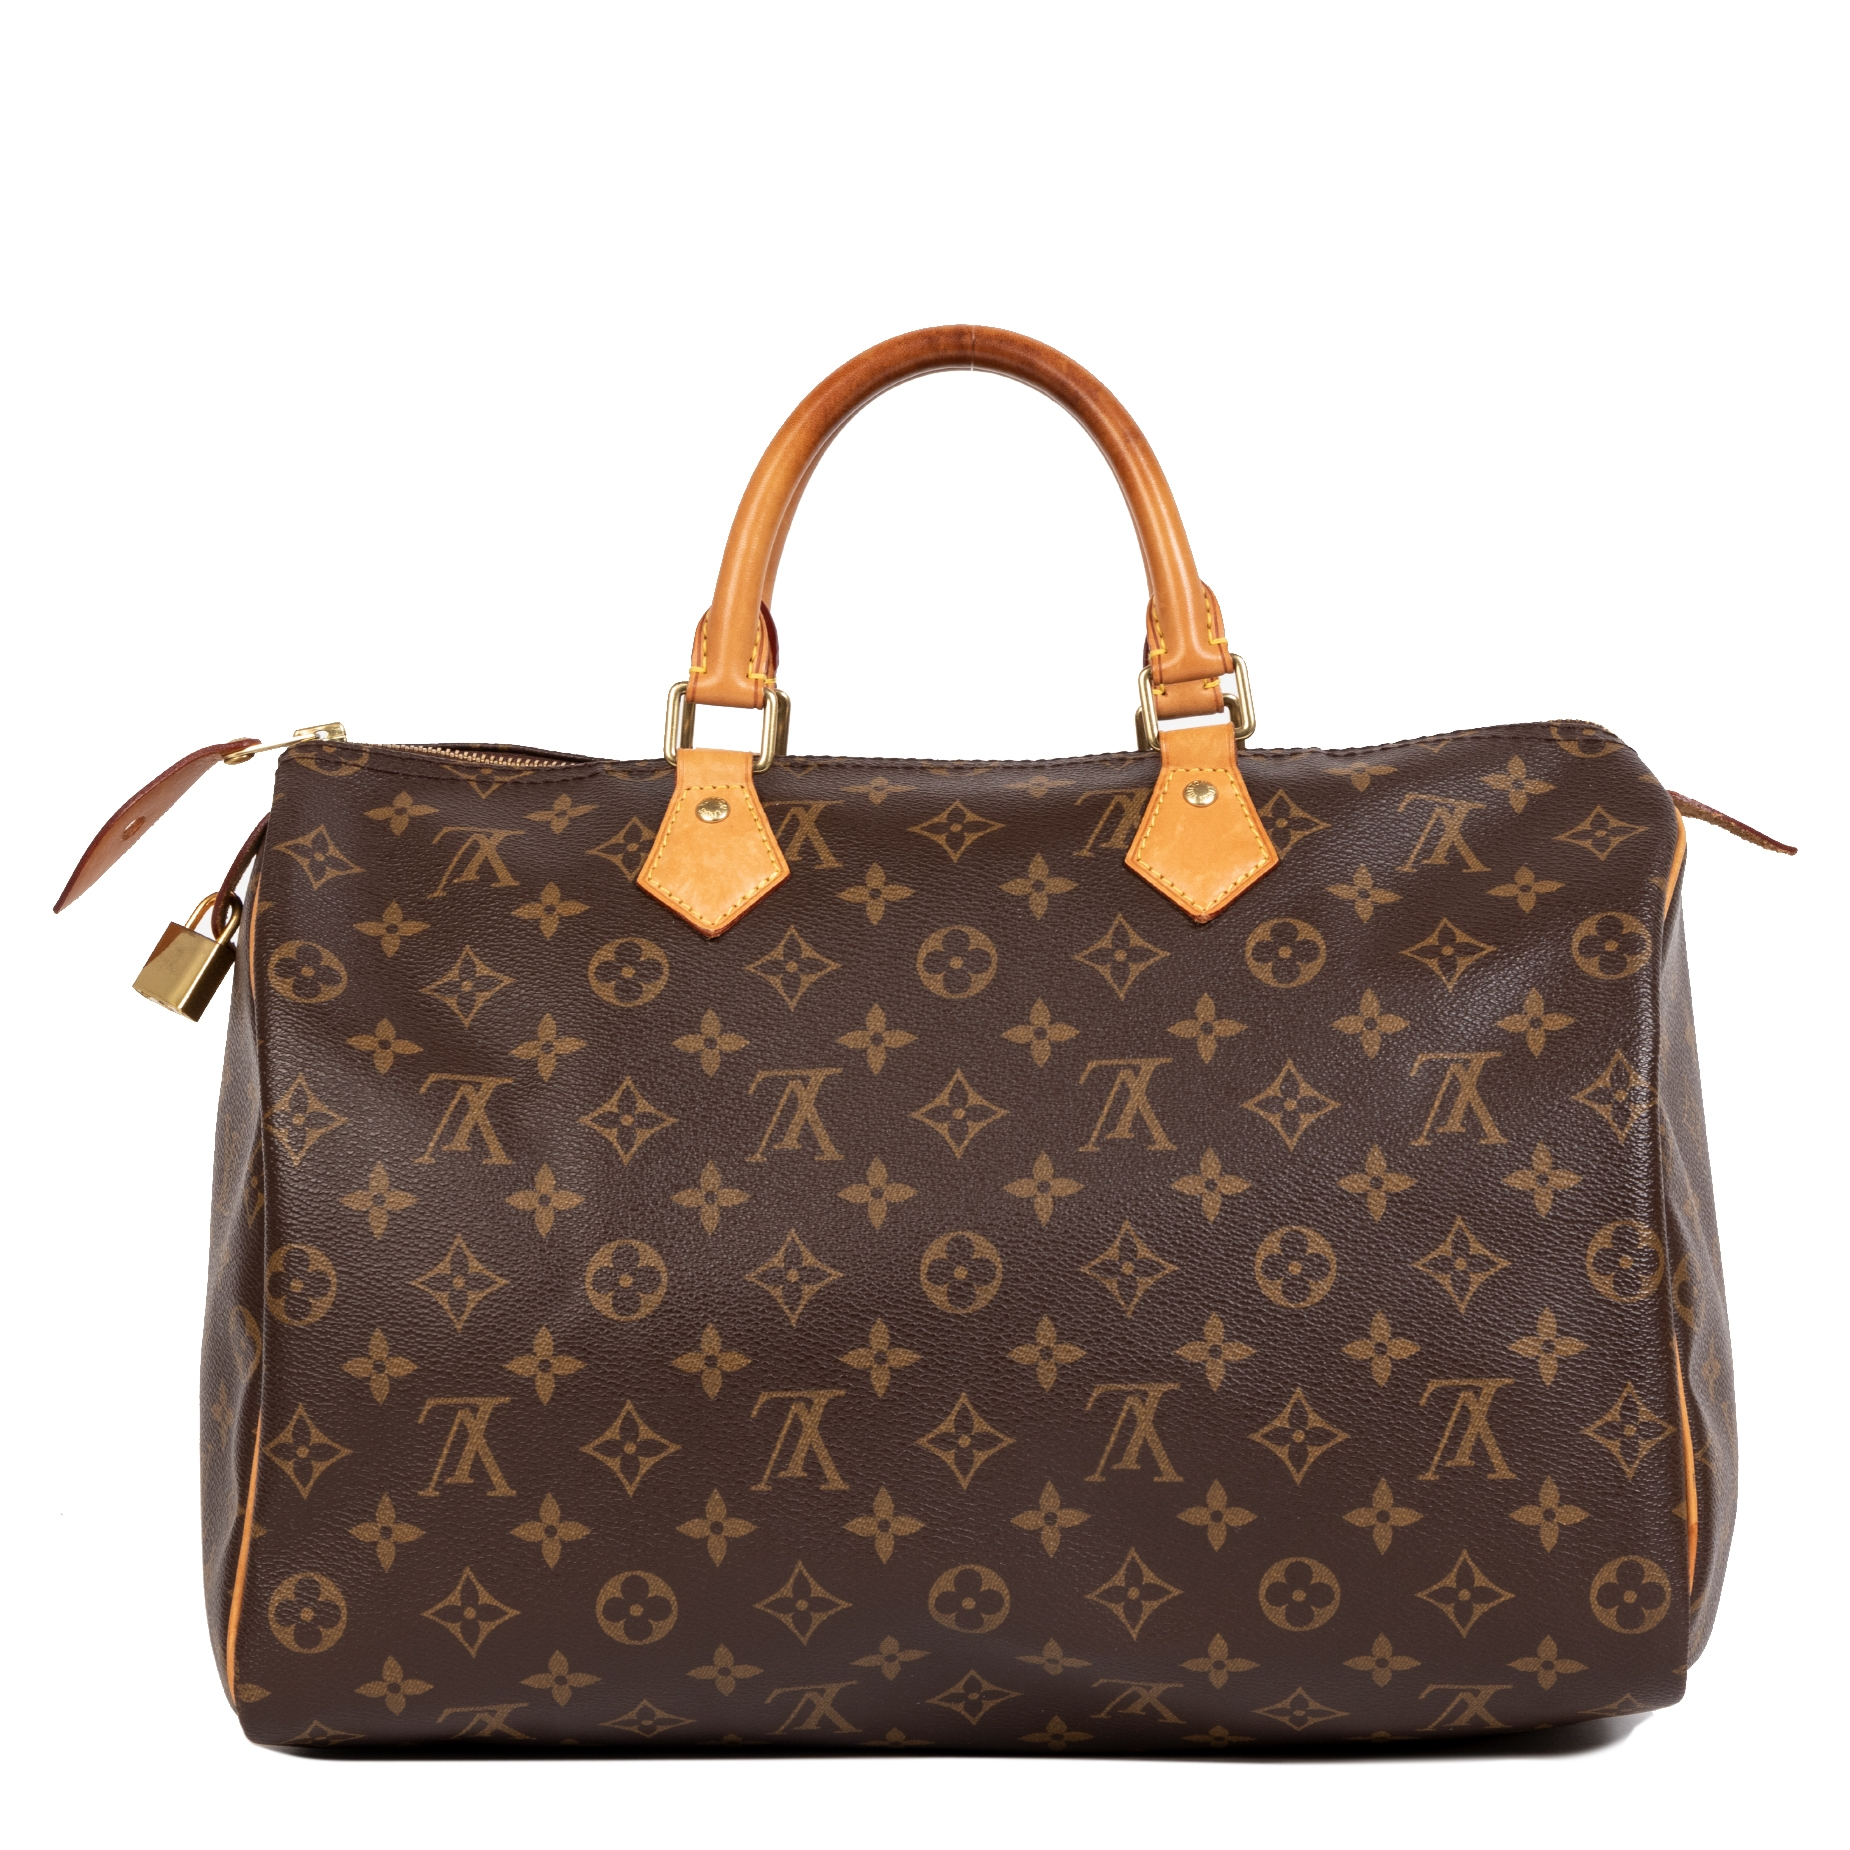 Authentique seconde-main vintage Louis Vuitton Monogram Speedy 35 Bag achète en ligne webshop LabelLOV